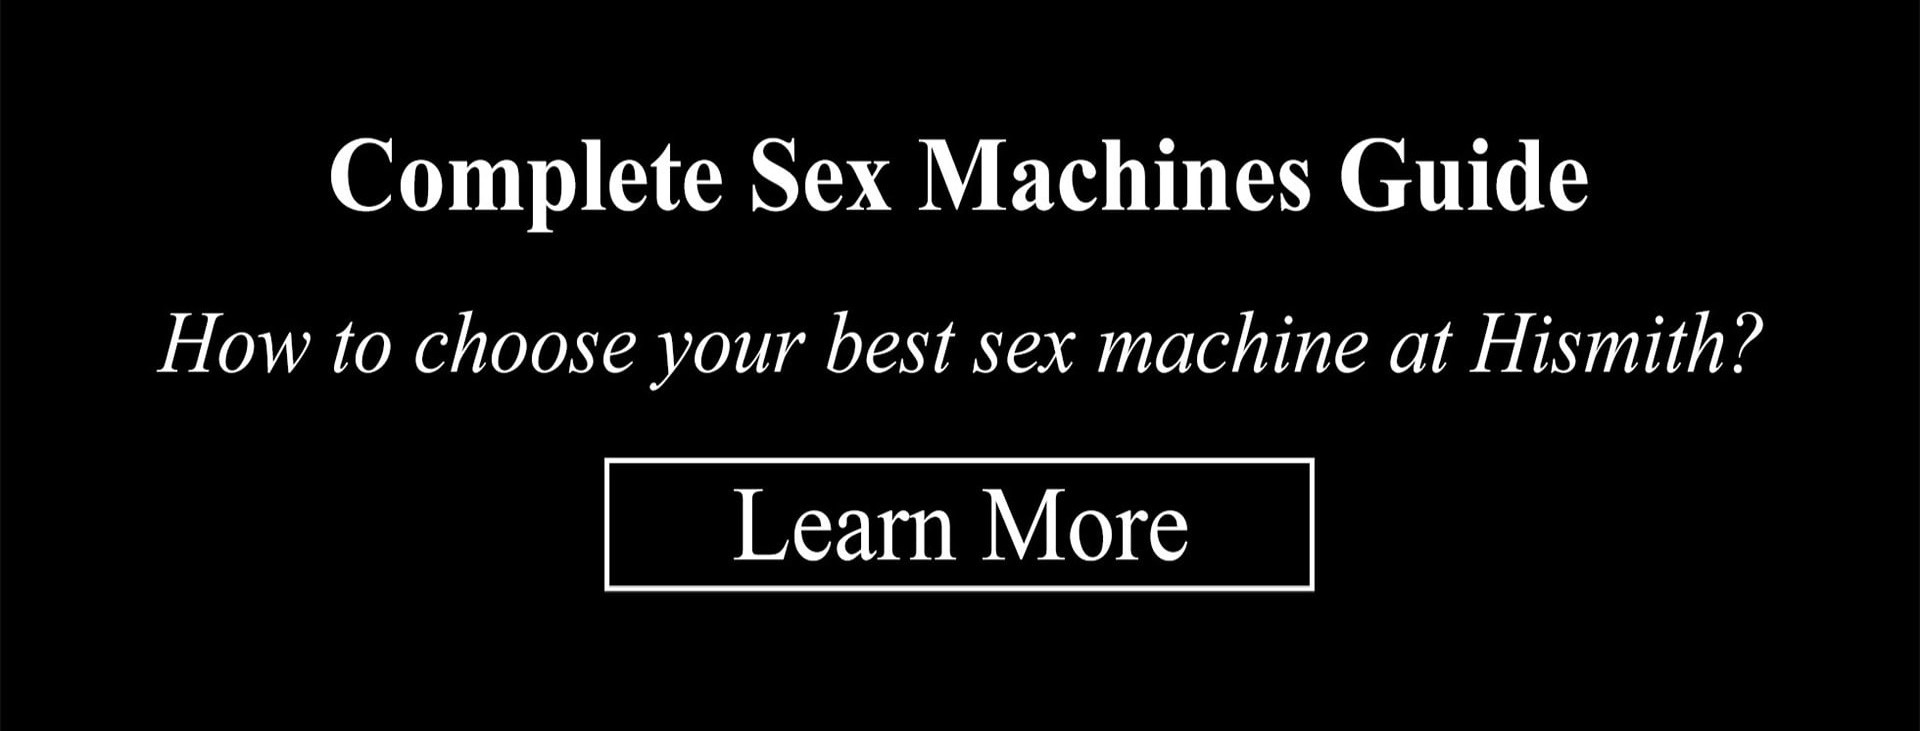 HISMITH COMPLETE BUYING GUIDE TO SEX MACHINES: SIDE-BY-SIDE COMPARISON